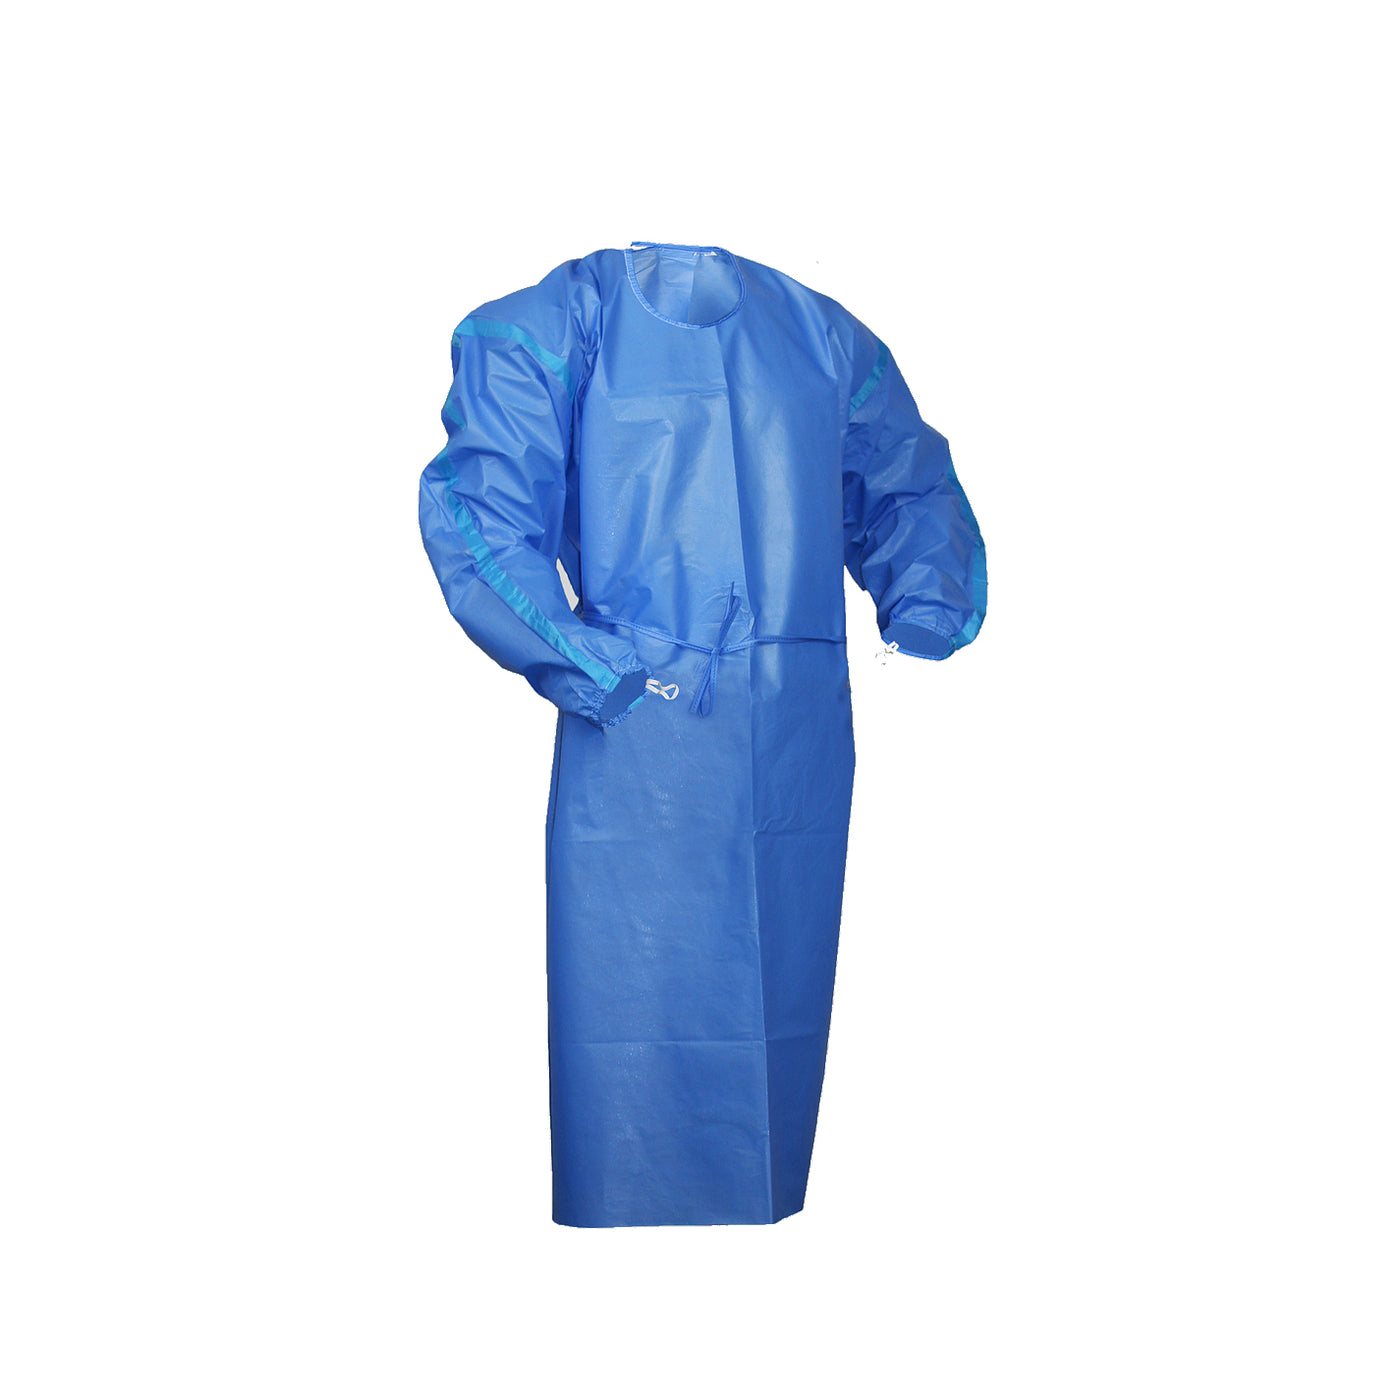 Epic-USP800 Compliant Barrier Gown (Sold By Case only 30 pieces)